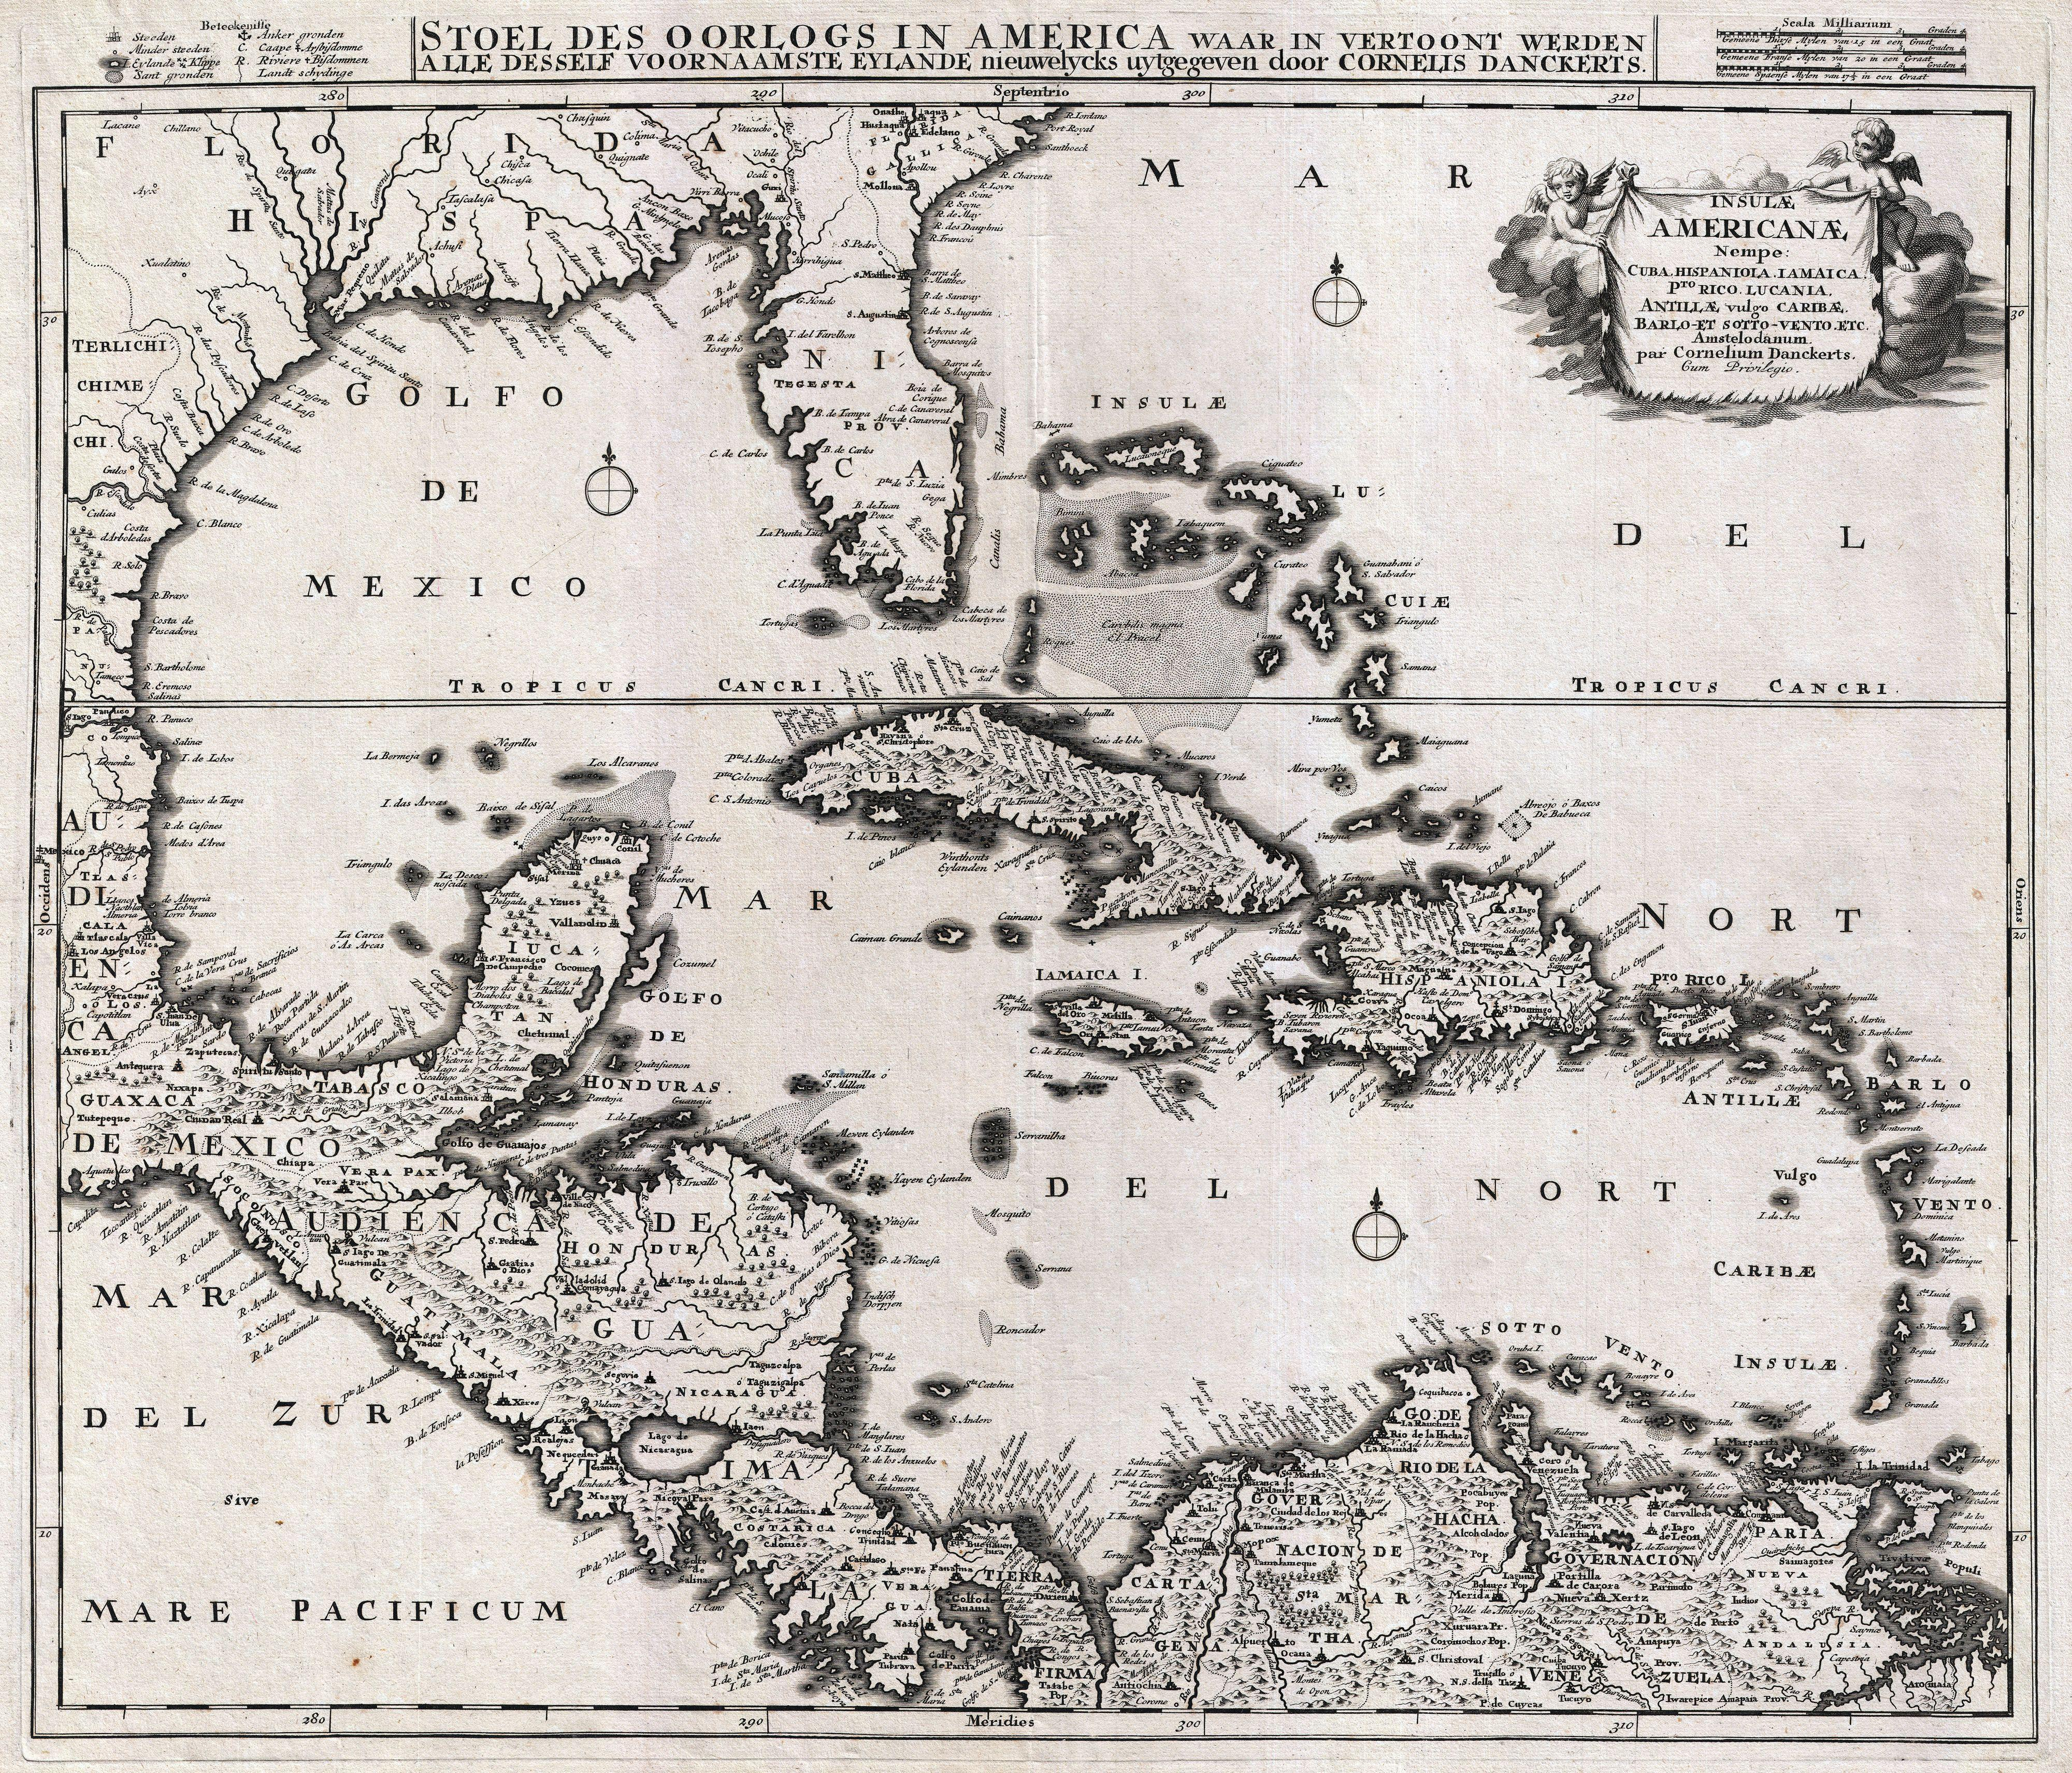 Treasure Map Of Central America And Caribbean Islands